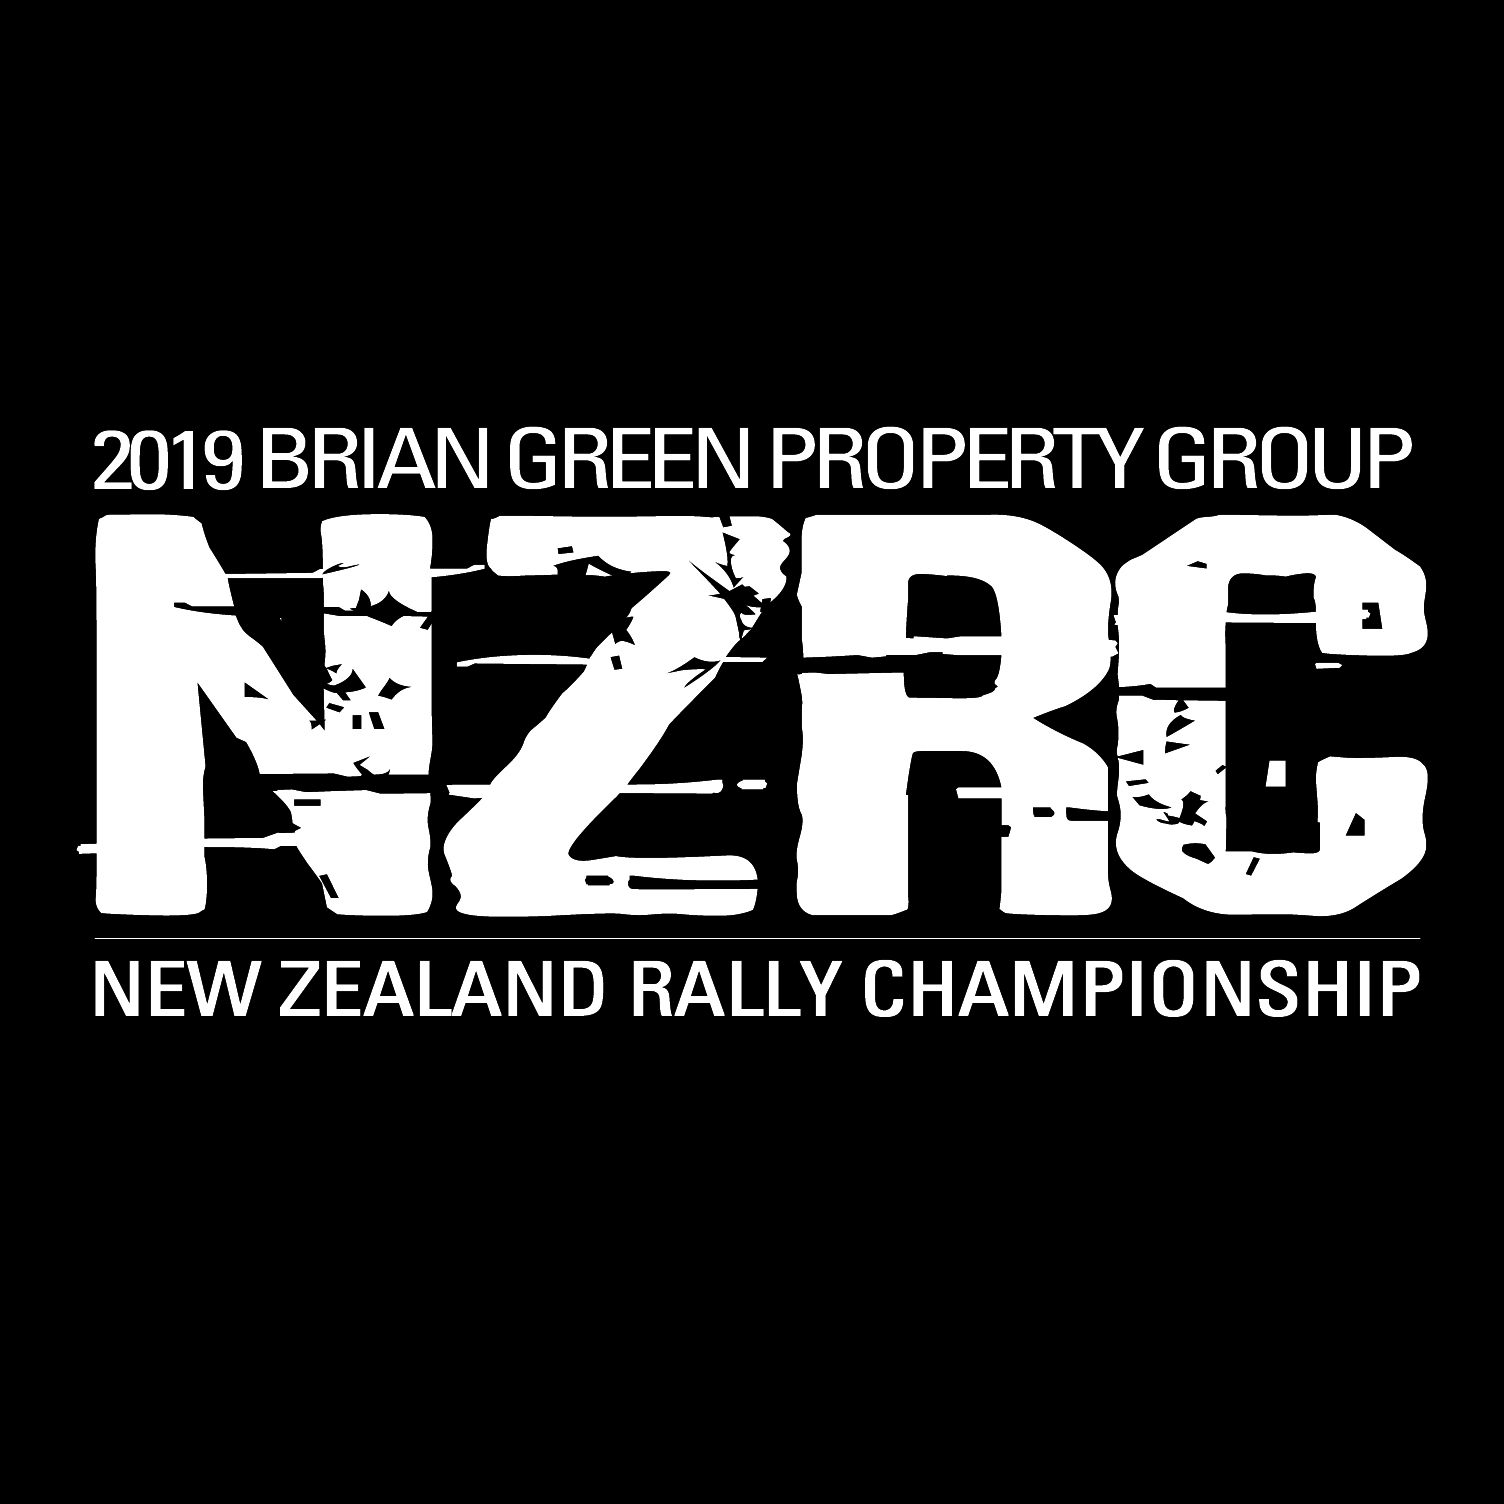 Hyundai New Zealand enters local rally sport with Paddon | :: Brian Green Property Group New Zealand Rally Championship ::